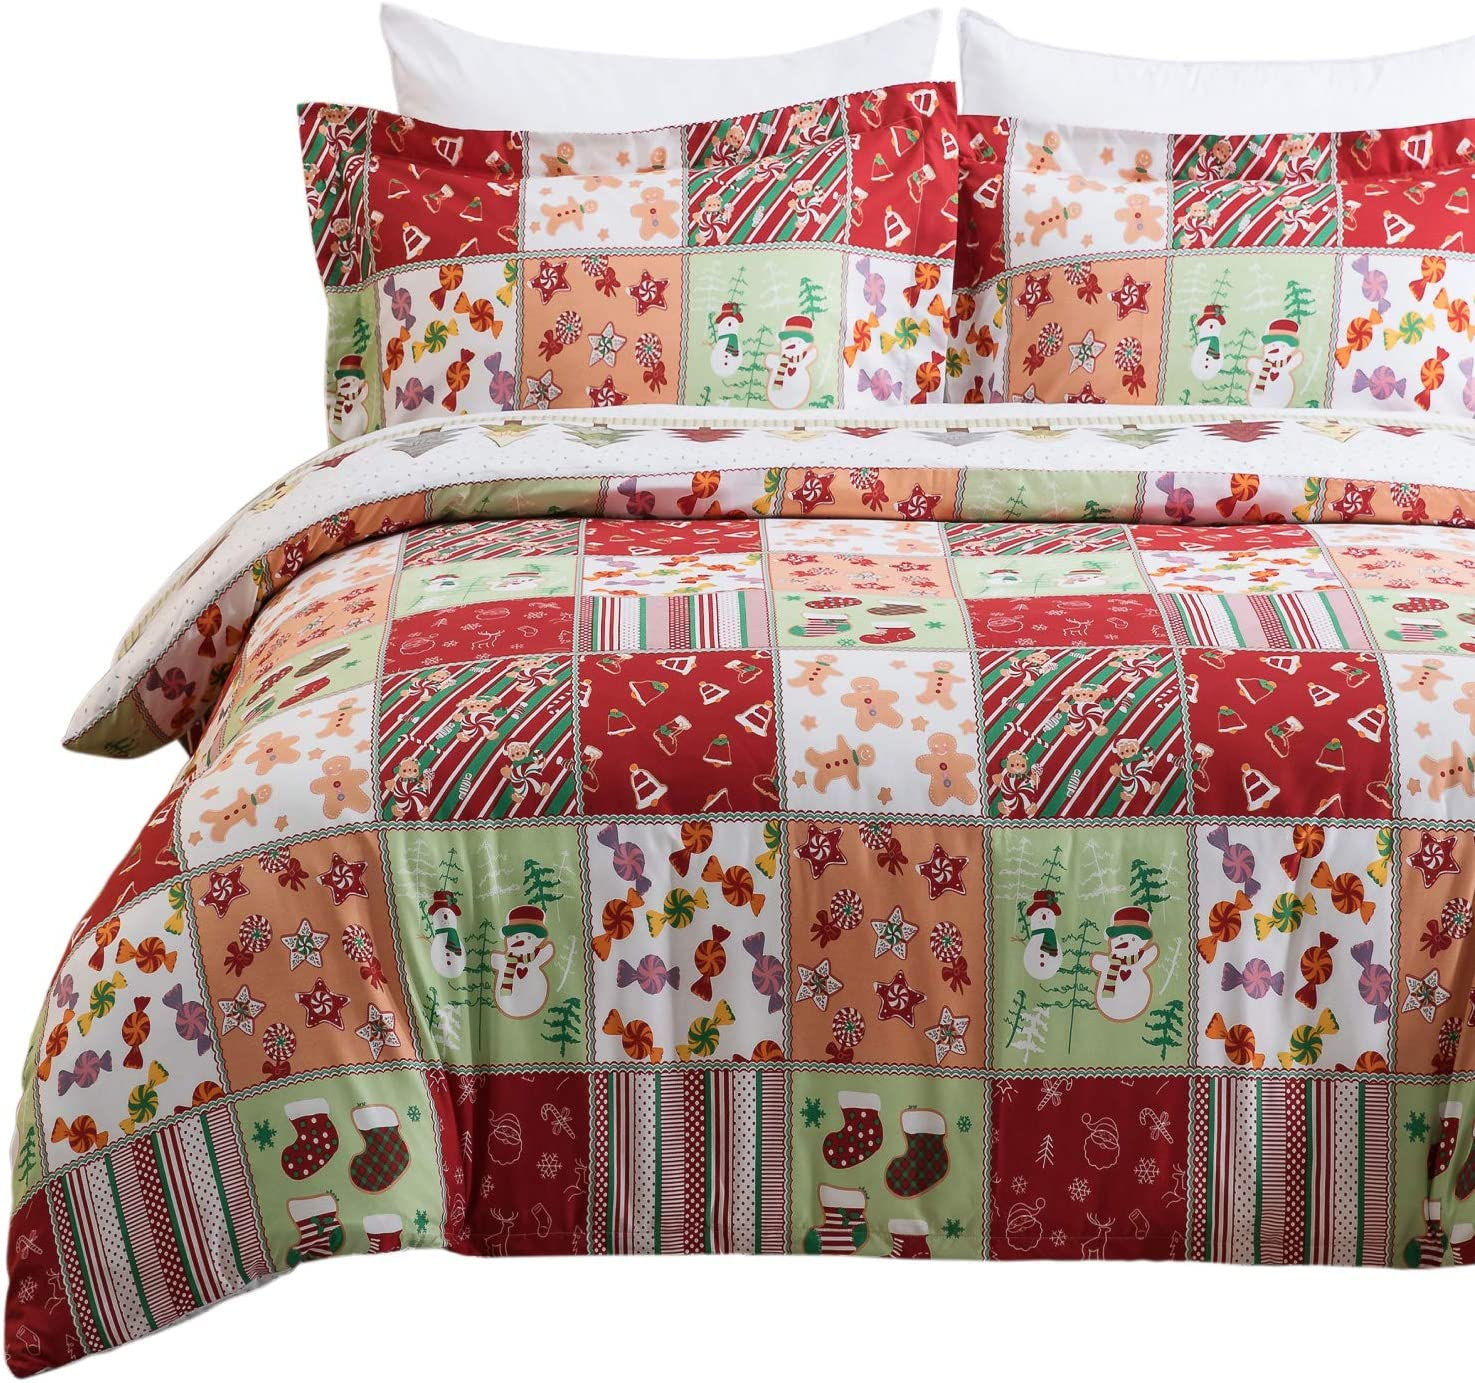 Bedsure Christmas Duvet Cover Set, King (104×90 inches) - Reversible Festival Pattern - Soft Microfiber Comforter Cover, 3 Pieces Bedding with 1 Duvet Cover (No Comforter Insert), 2 Pillow Shams